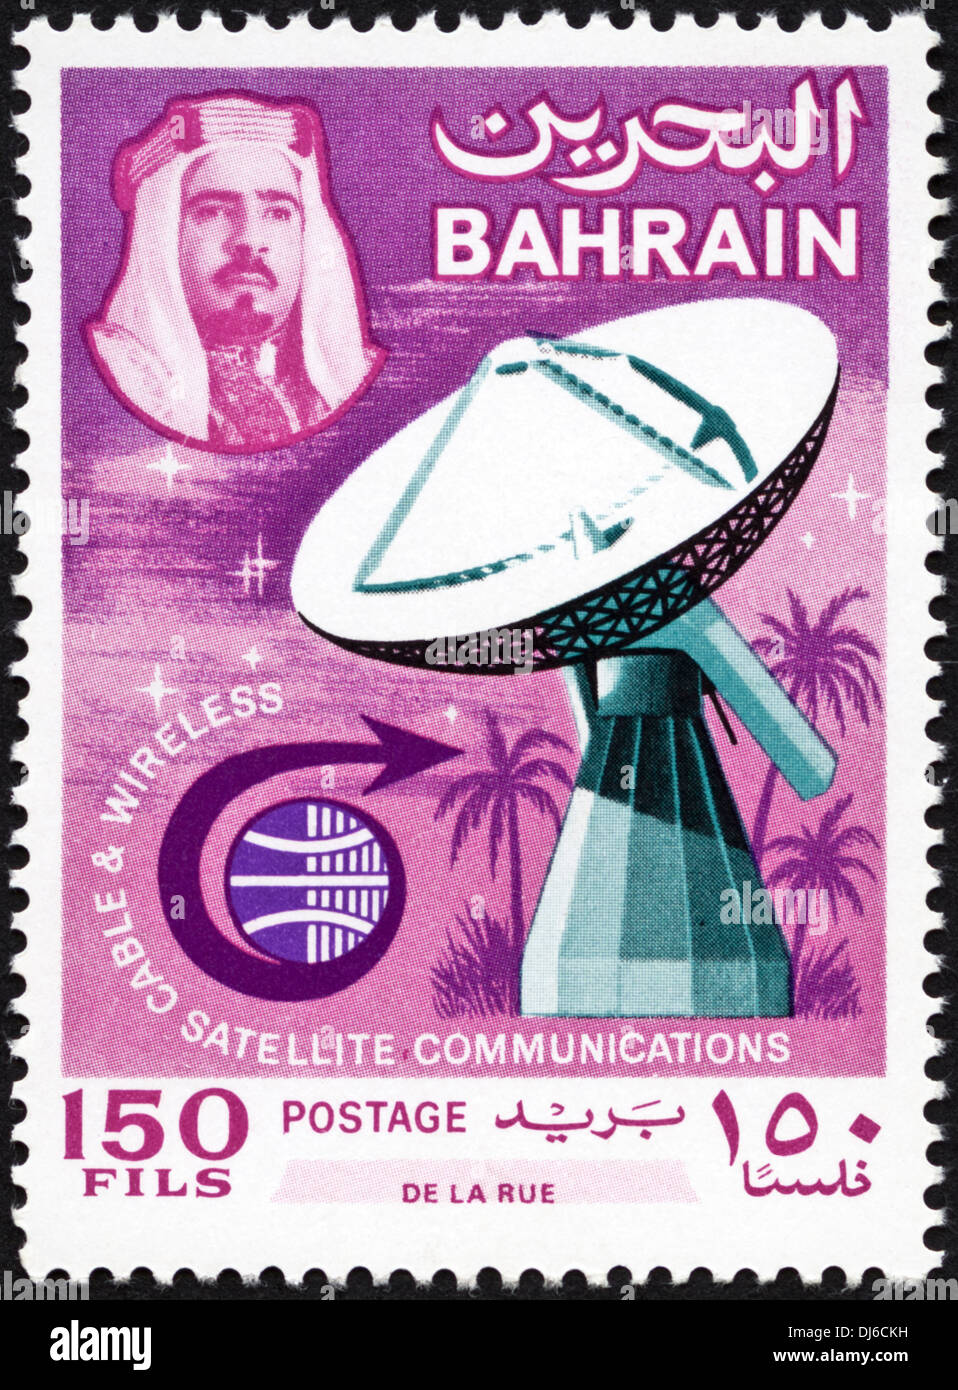 postage stamp Bahrain 150 Fils featuring Cable & Wireless Satellite Communications dated 1967 - Stock Image